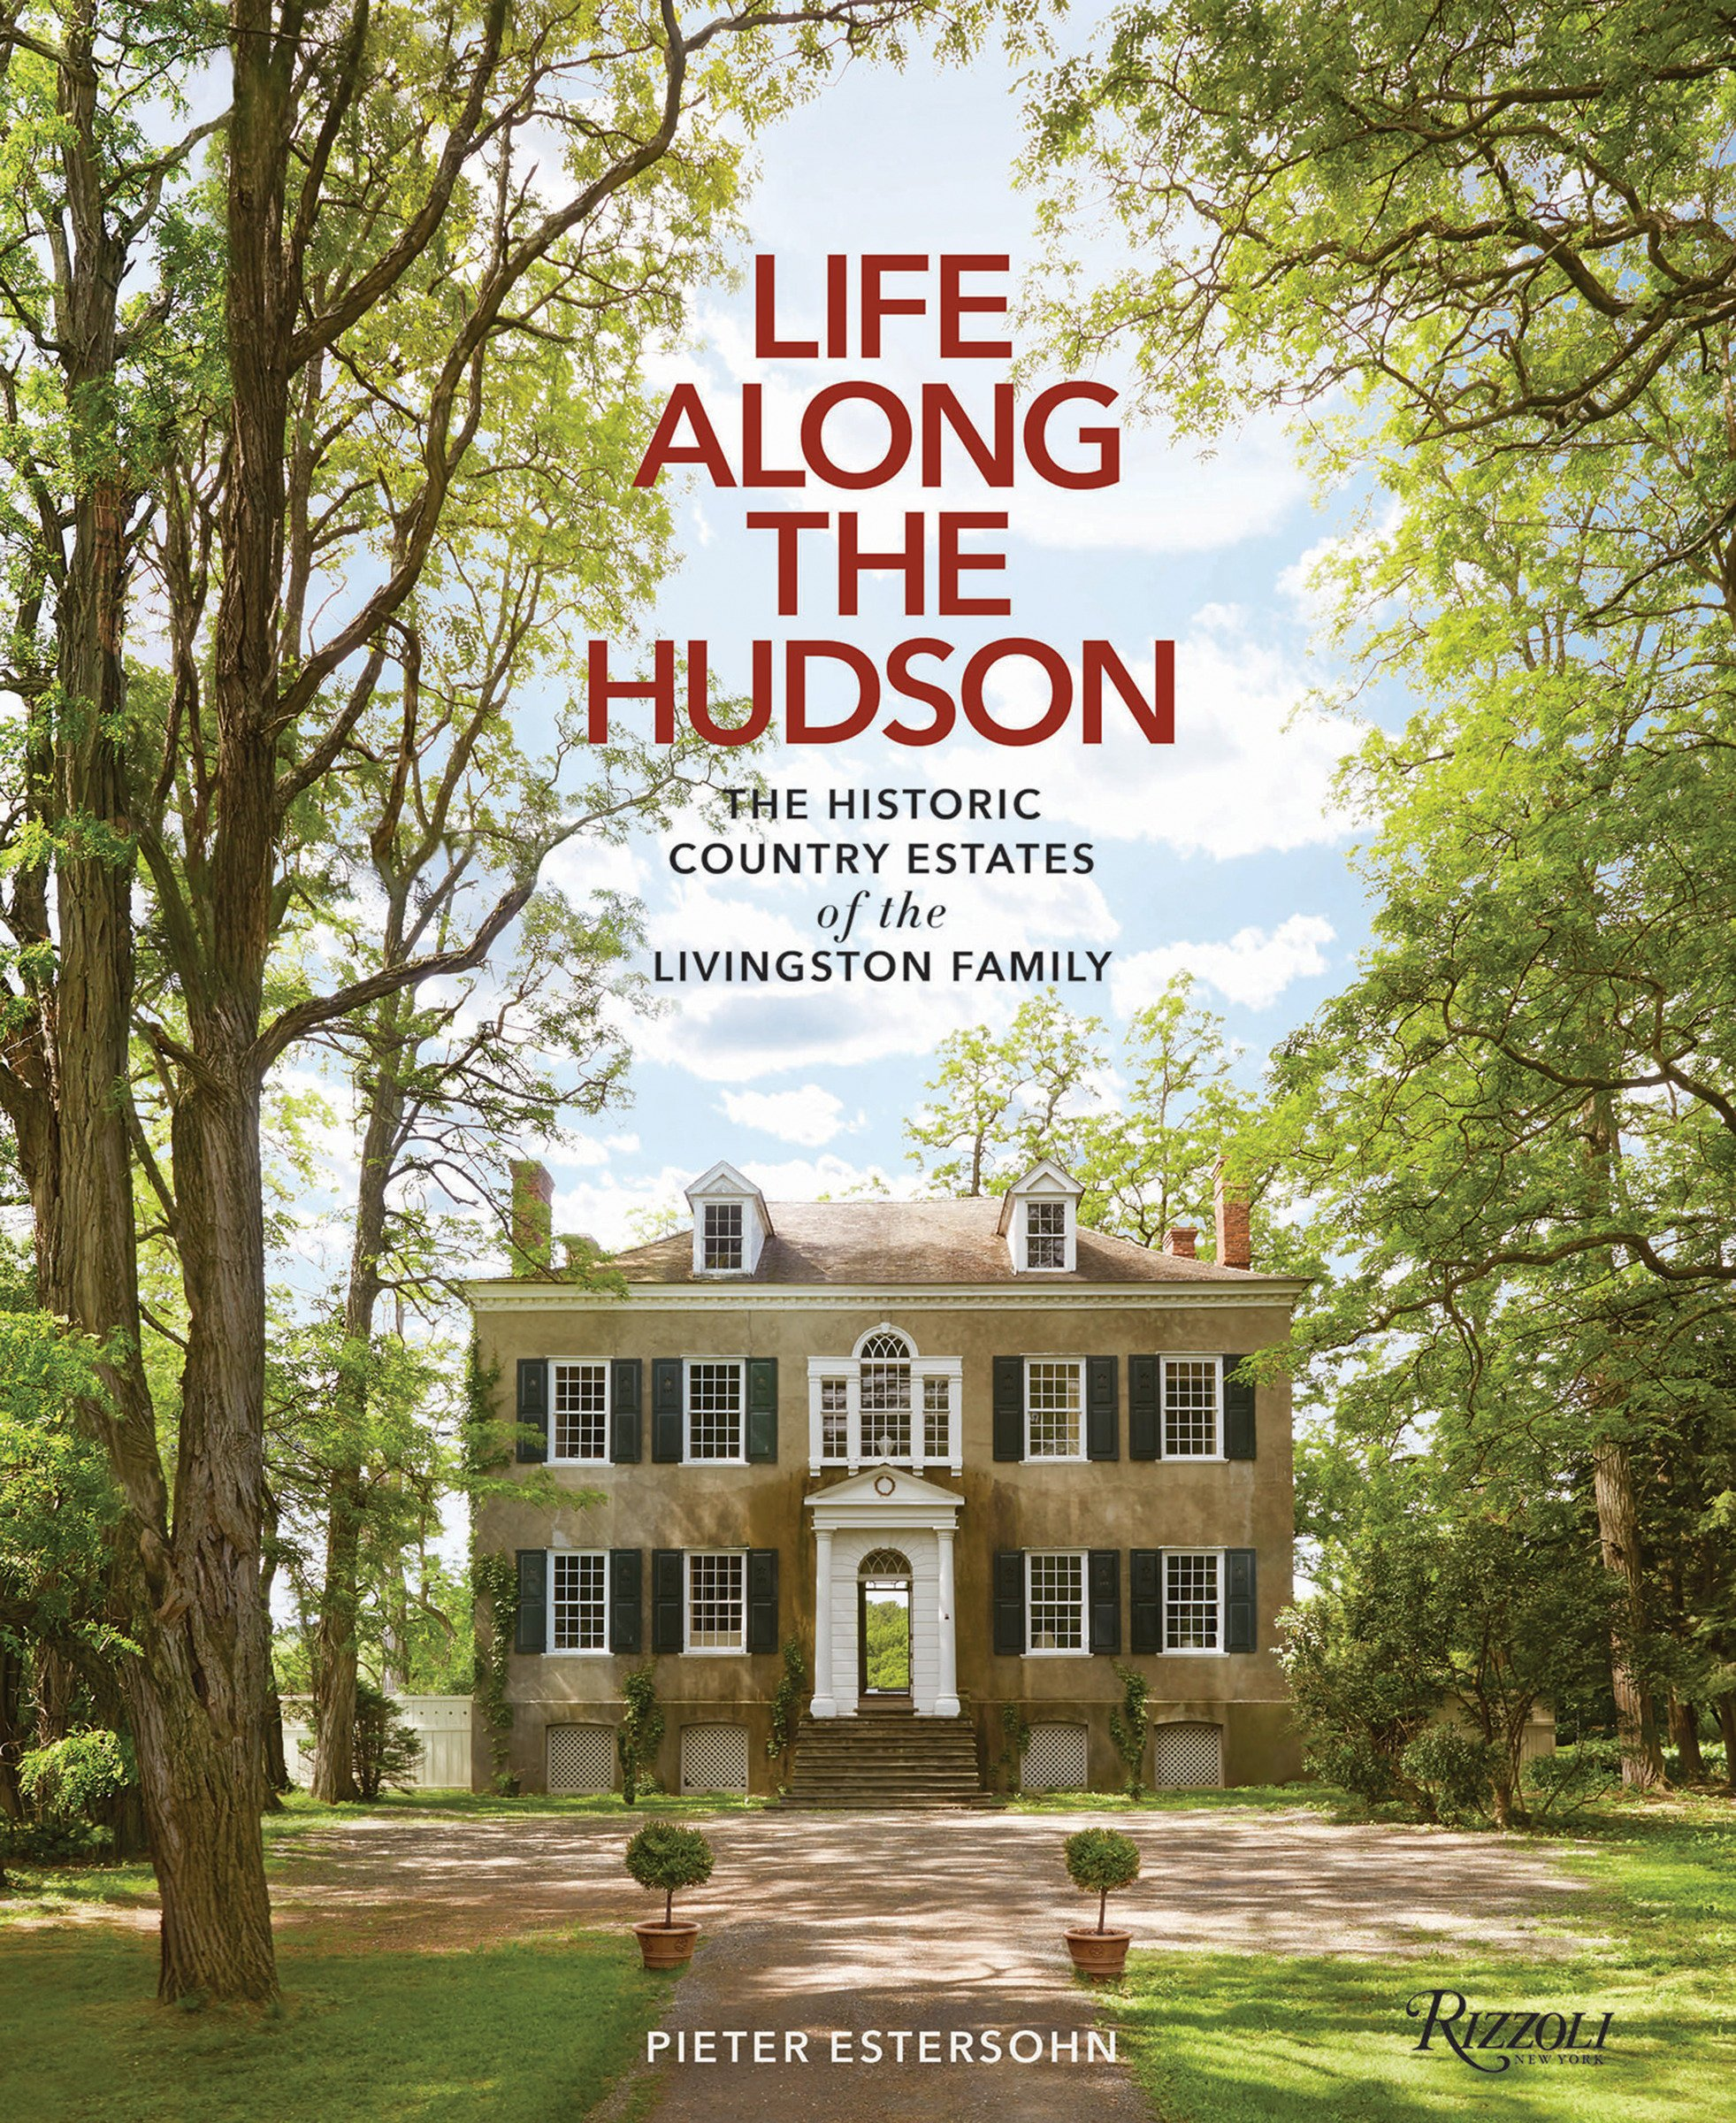 A Life Along the Hudson: The Historic Country Estates of the Livingston Family